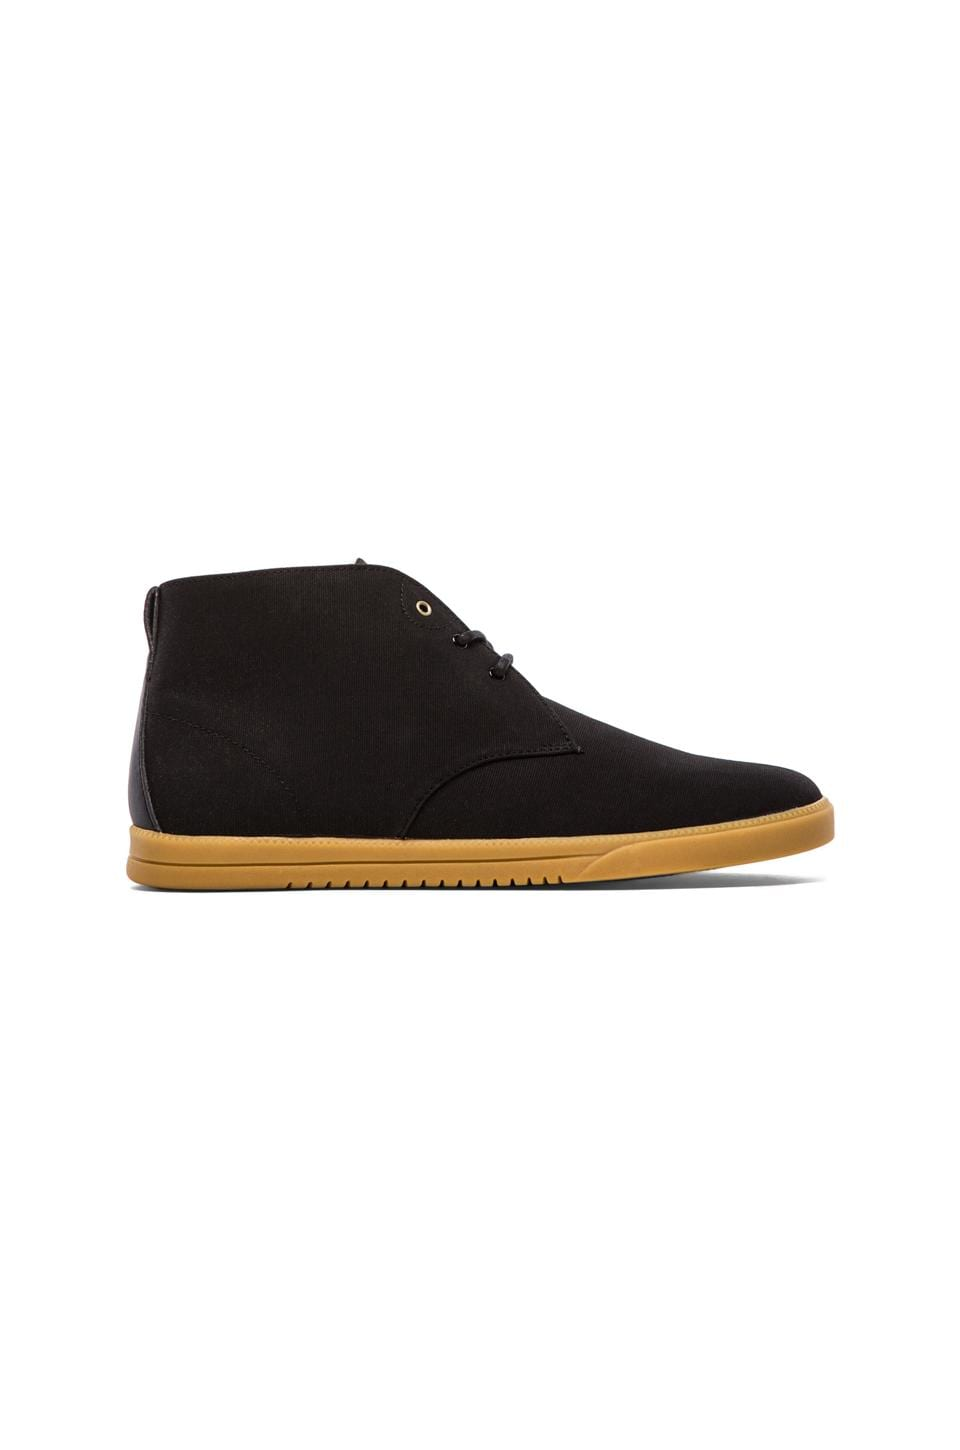 Clae Strayhorn Textile in Black Canvas Light Gum